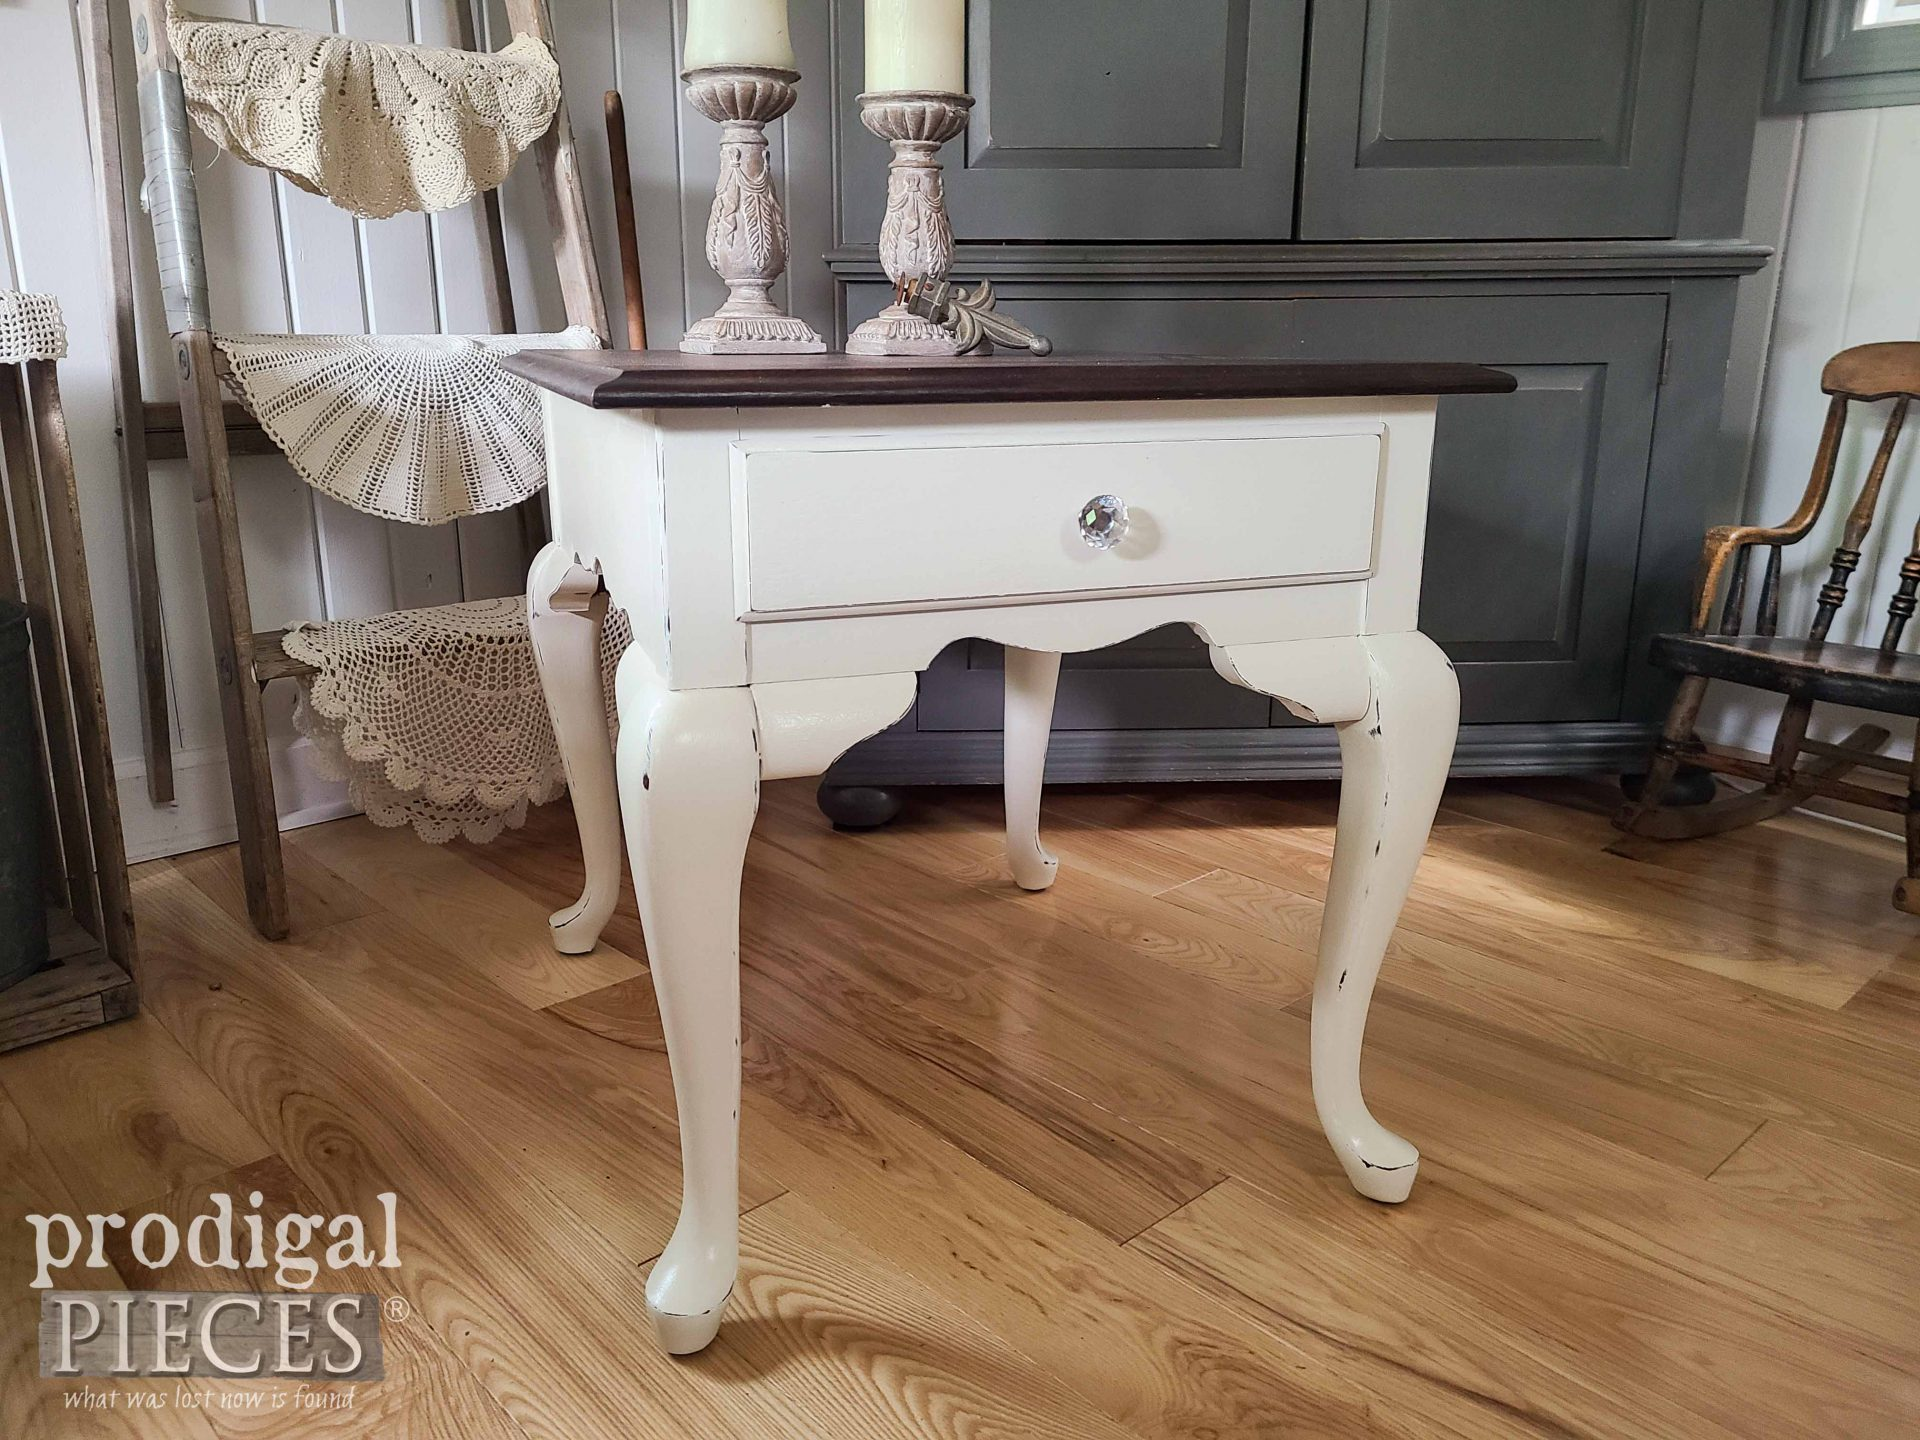 Absolutely Gorgeous Vintage Broyhill Queen Anne Table by Prodigal Pieces | prodigalpieces.com #prodigalpieces #diy #home #homedecor #furniture #vintage